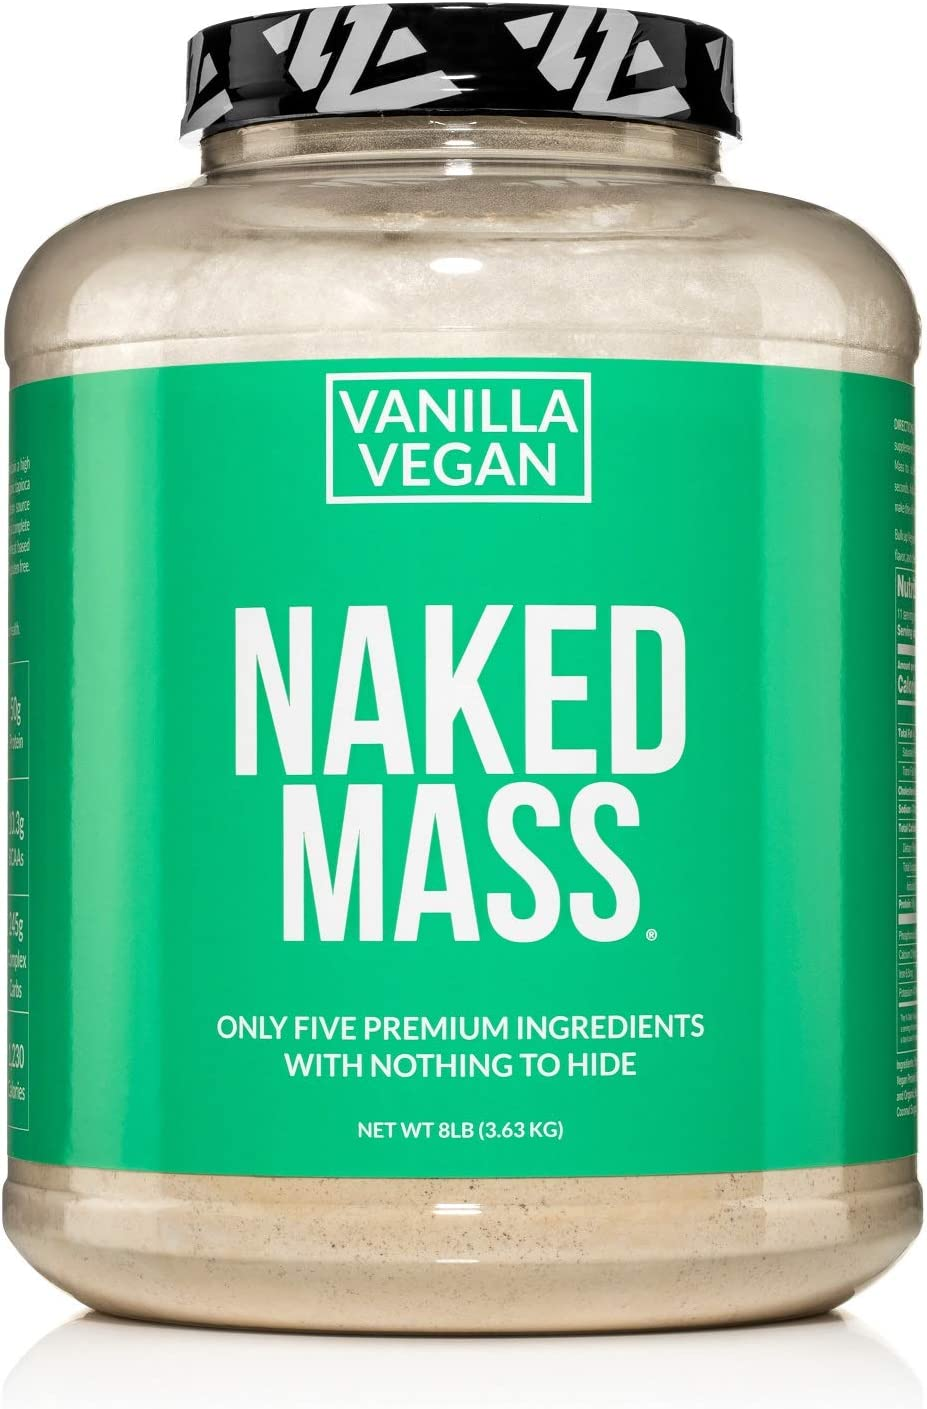 Naked Mass - Vanilla Vegan Weight Gainer - 8lb Bulk, GMO Free, Gluten Free, Soy Free & Dairy Free. No Artificial Ingredients – 1,230 Calories – 11 Servings: Health & Personal Care